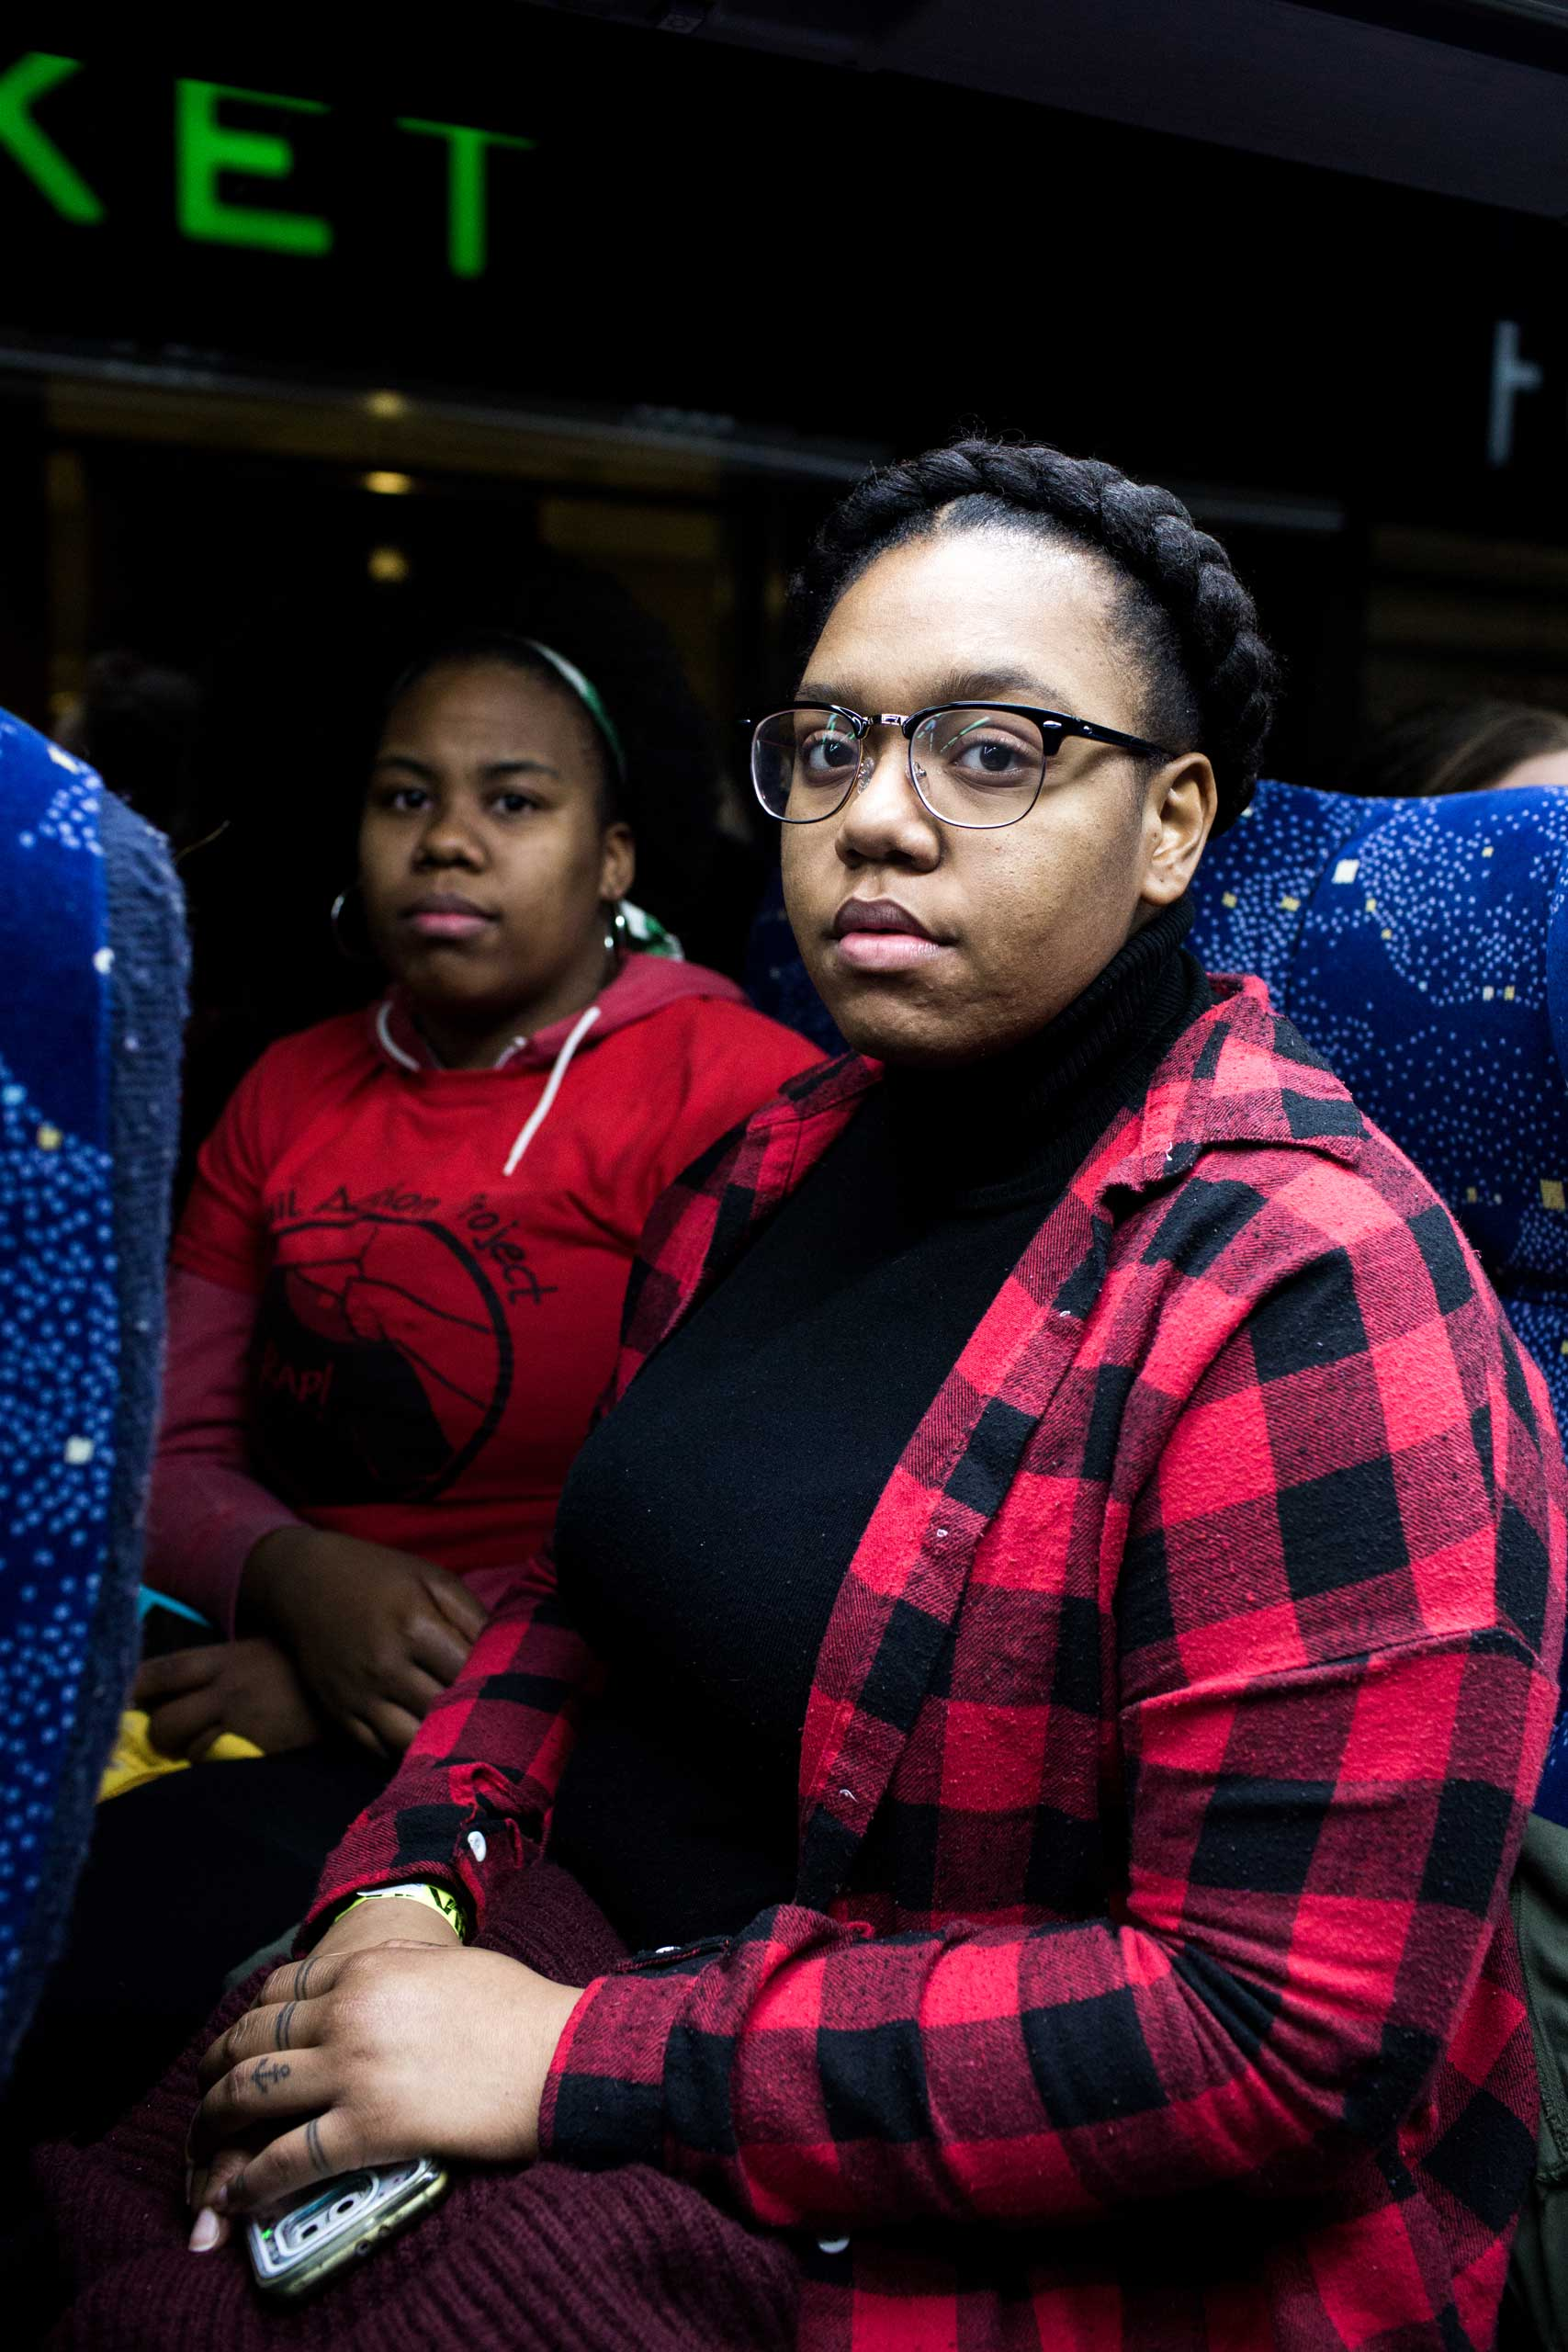 1:38 AM: Lysondra Webb, 25, (right) and Sade Dixon, 25, (left) pose for a portrait on the bus.  As a member of a marginalized community I'm obligated to be a representative,  Lysondra tells me.  That person who's going to be sitting in the White House and all his cronies are not for me.                                                                 My grandparents protested with Malcolm X for me to have a better life. It's my duty to continue the fight and its' sad that I have to but I will fight and speak up for my brothers and my community,  says Dixon.